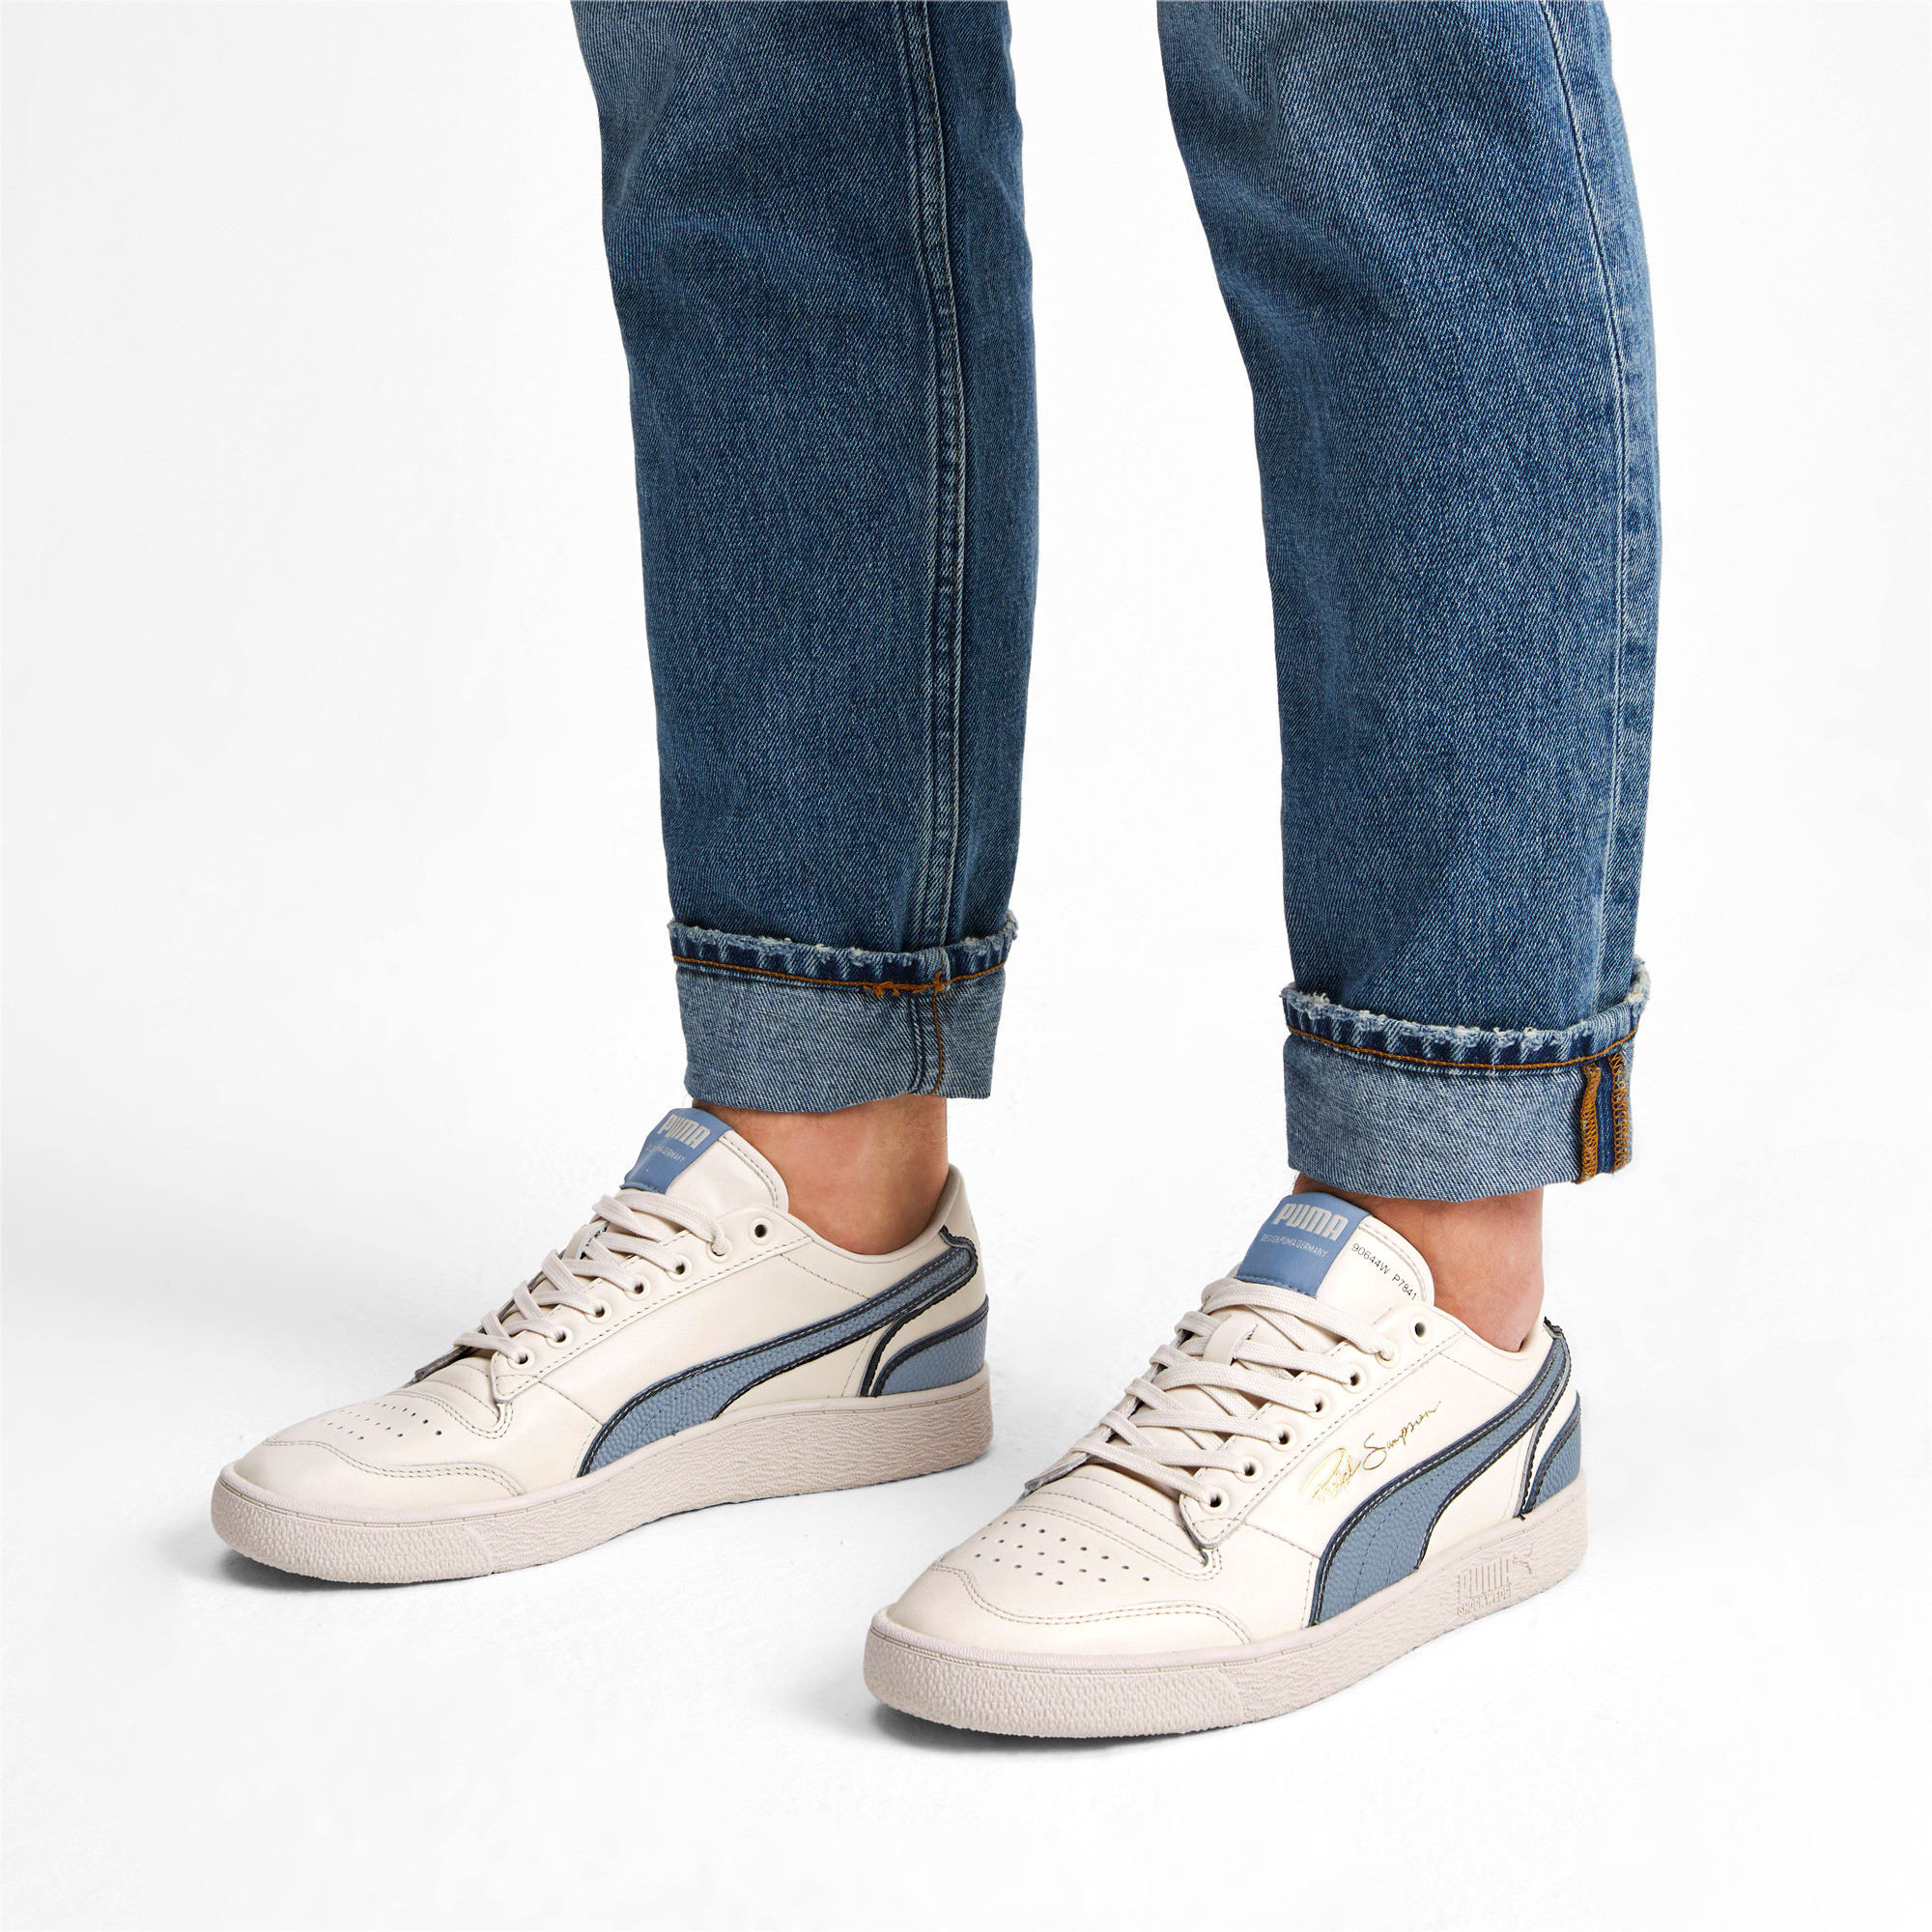 Thumbnail 2 of Ralph Sampson Lo Hoops Trainers, Pastel-Faded Denim-Pastel, medium-IND